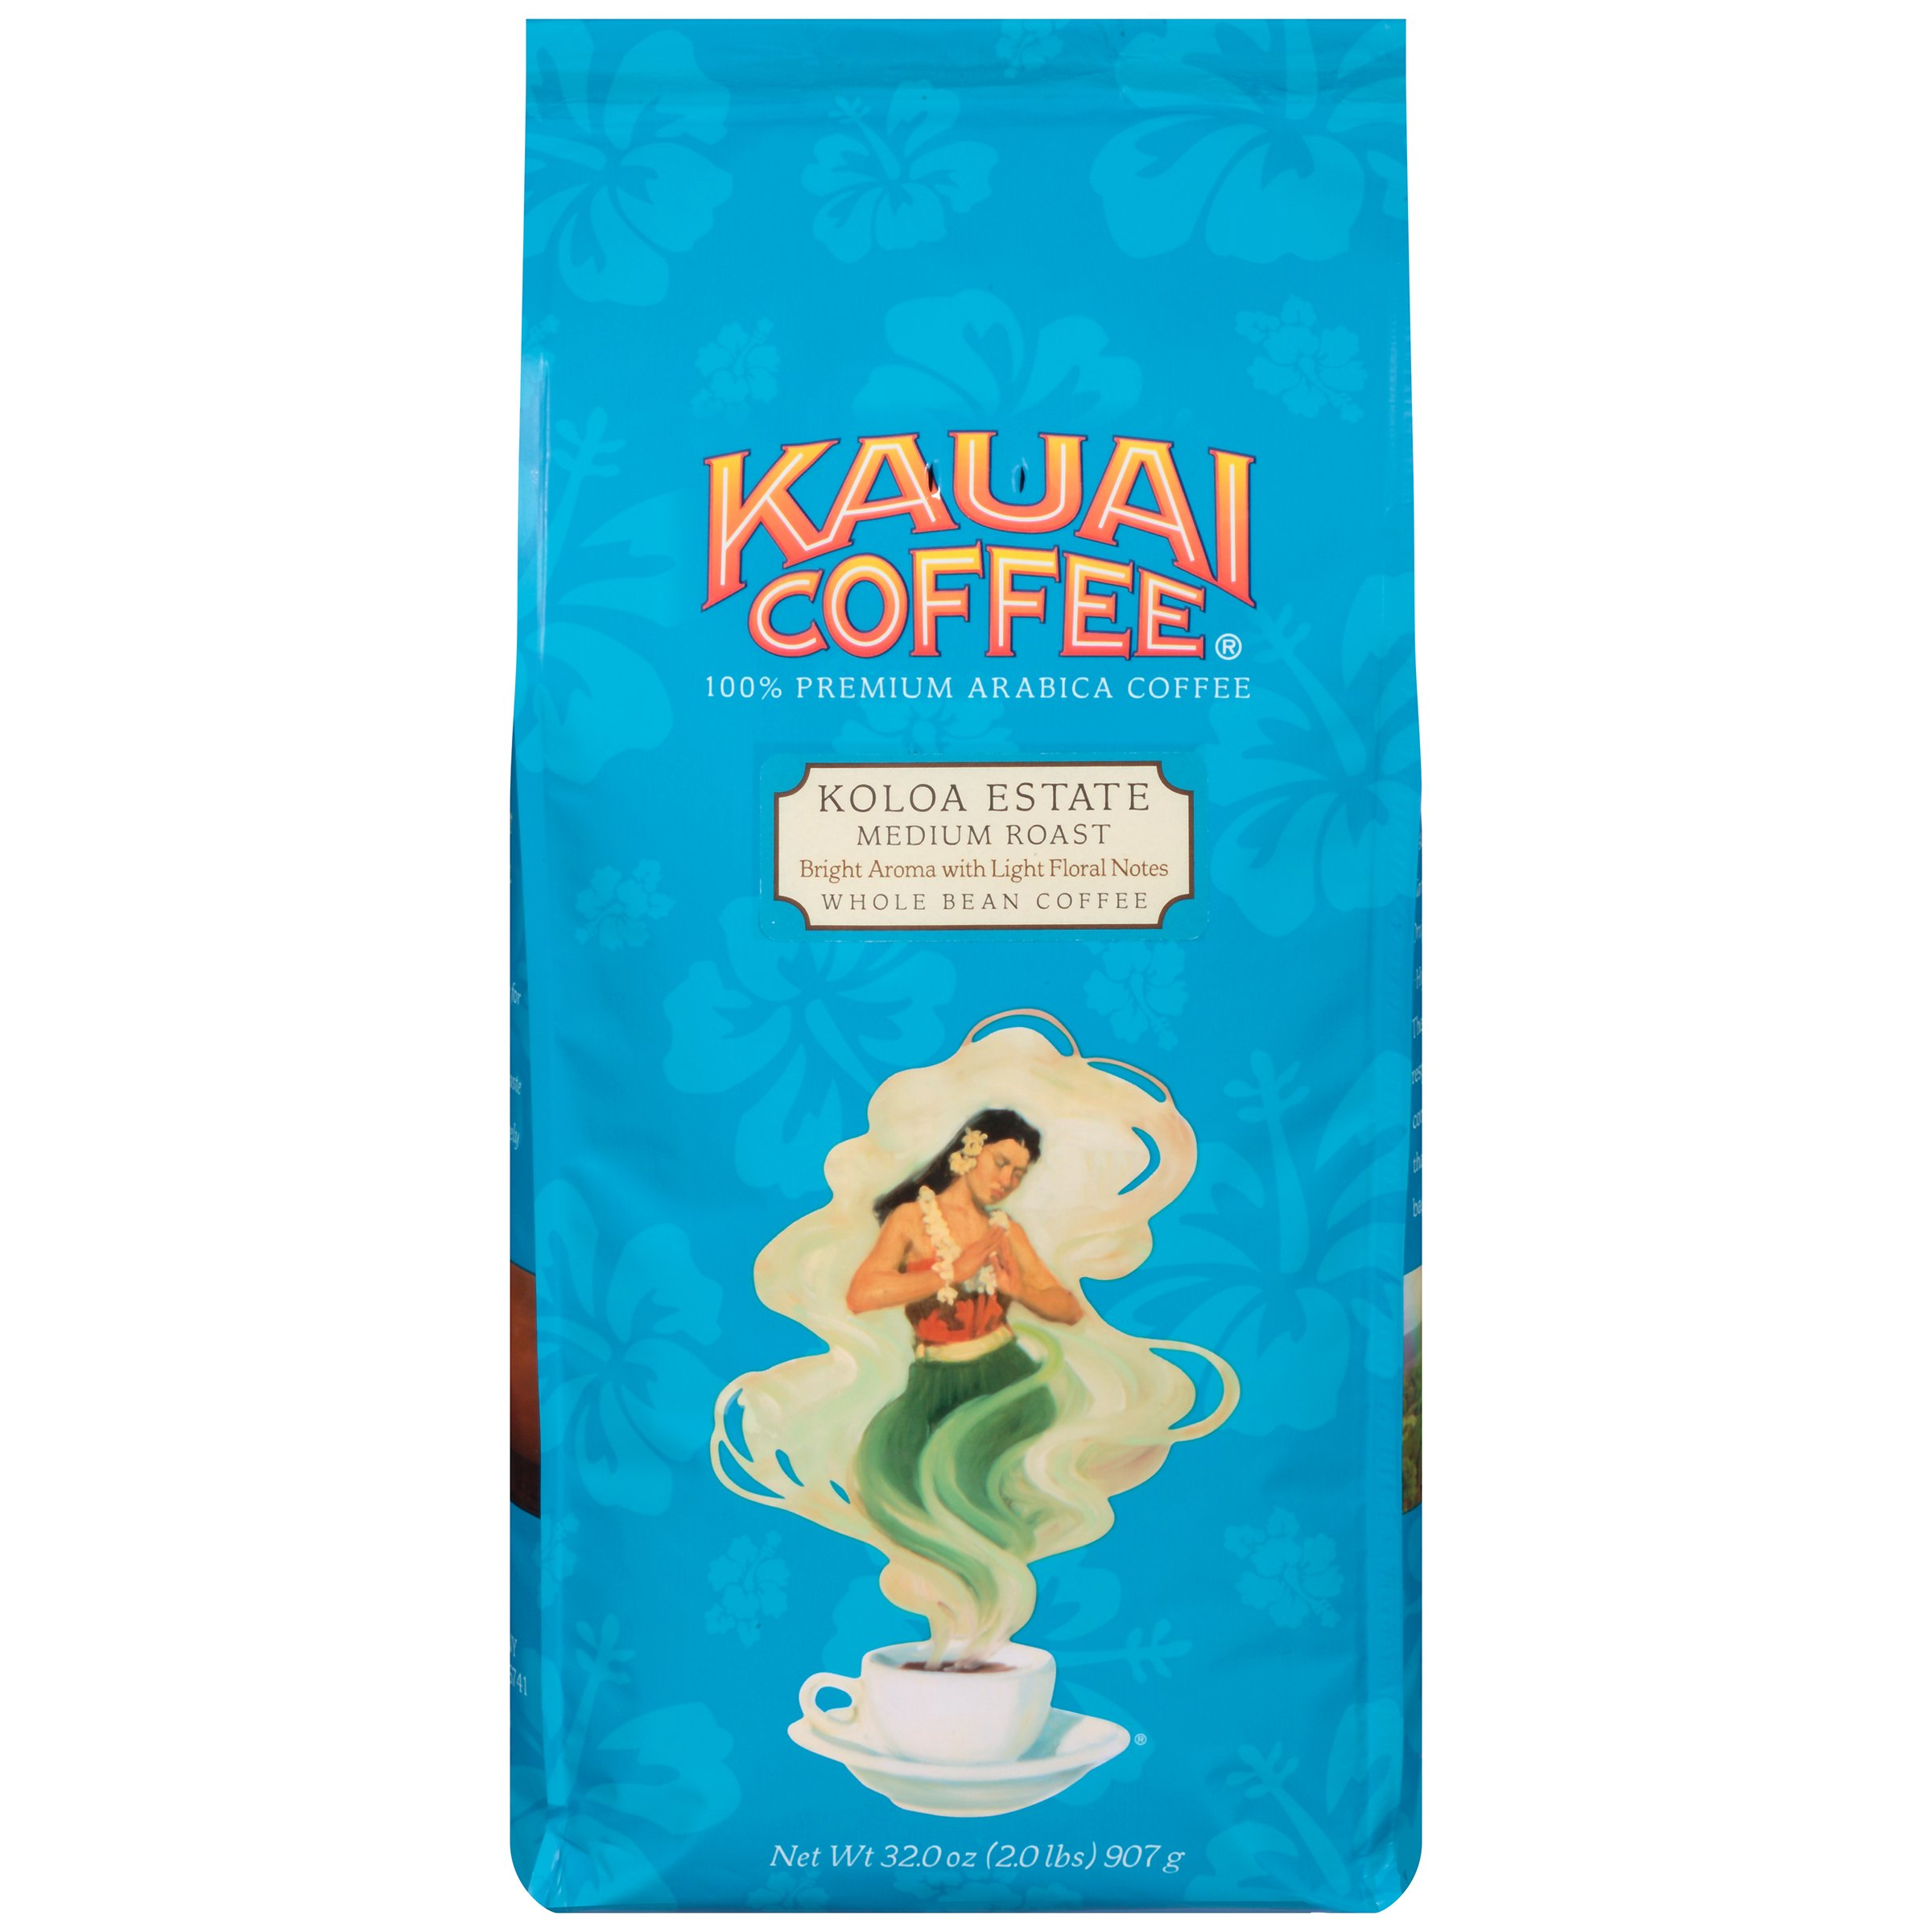 Kauai Whole Bean Coffee, Koloa Estate Medium Roast - 100% Premium Arabica Whole Bean Coffee from Hawaii's Largest Coffee Grower - Bright Aroma with Light Floral Notes (32 Ounces)